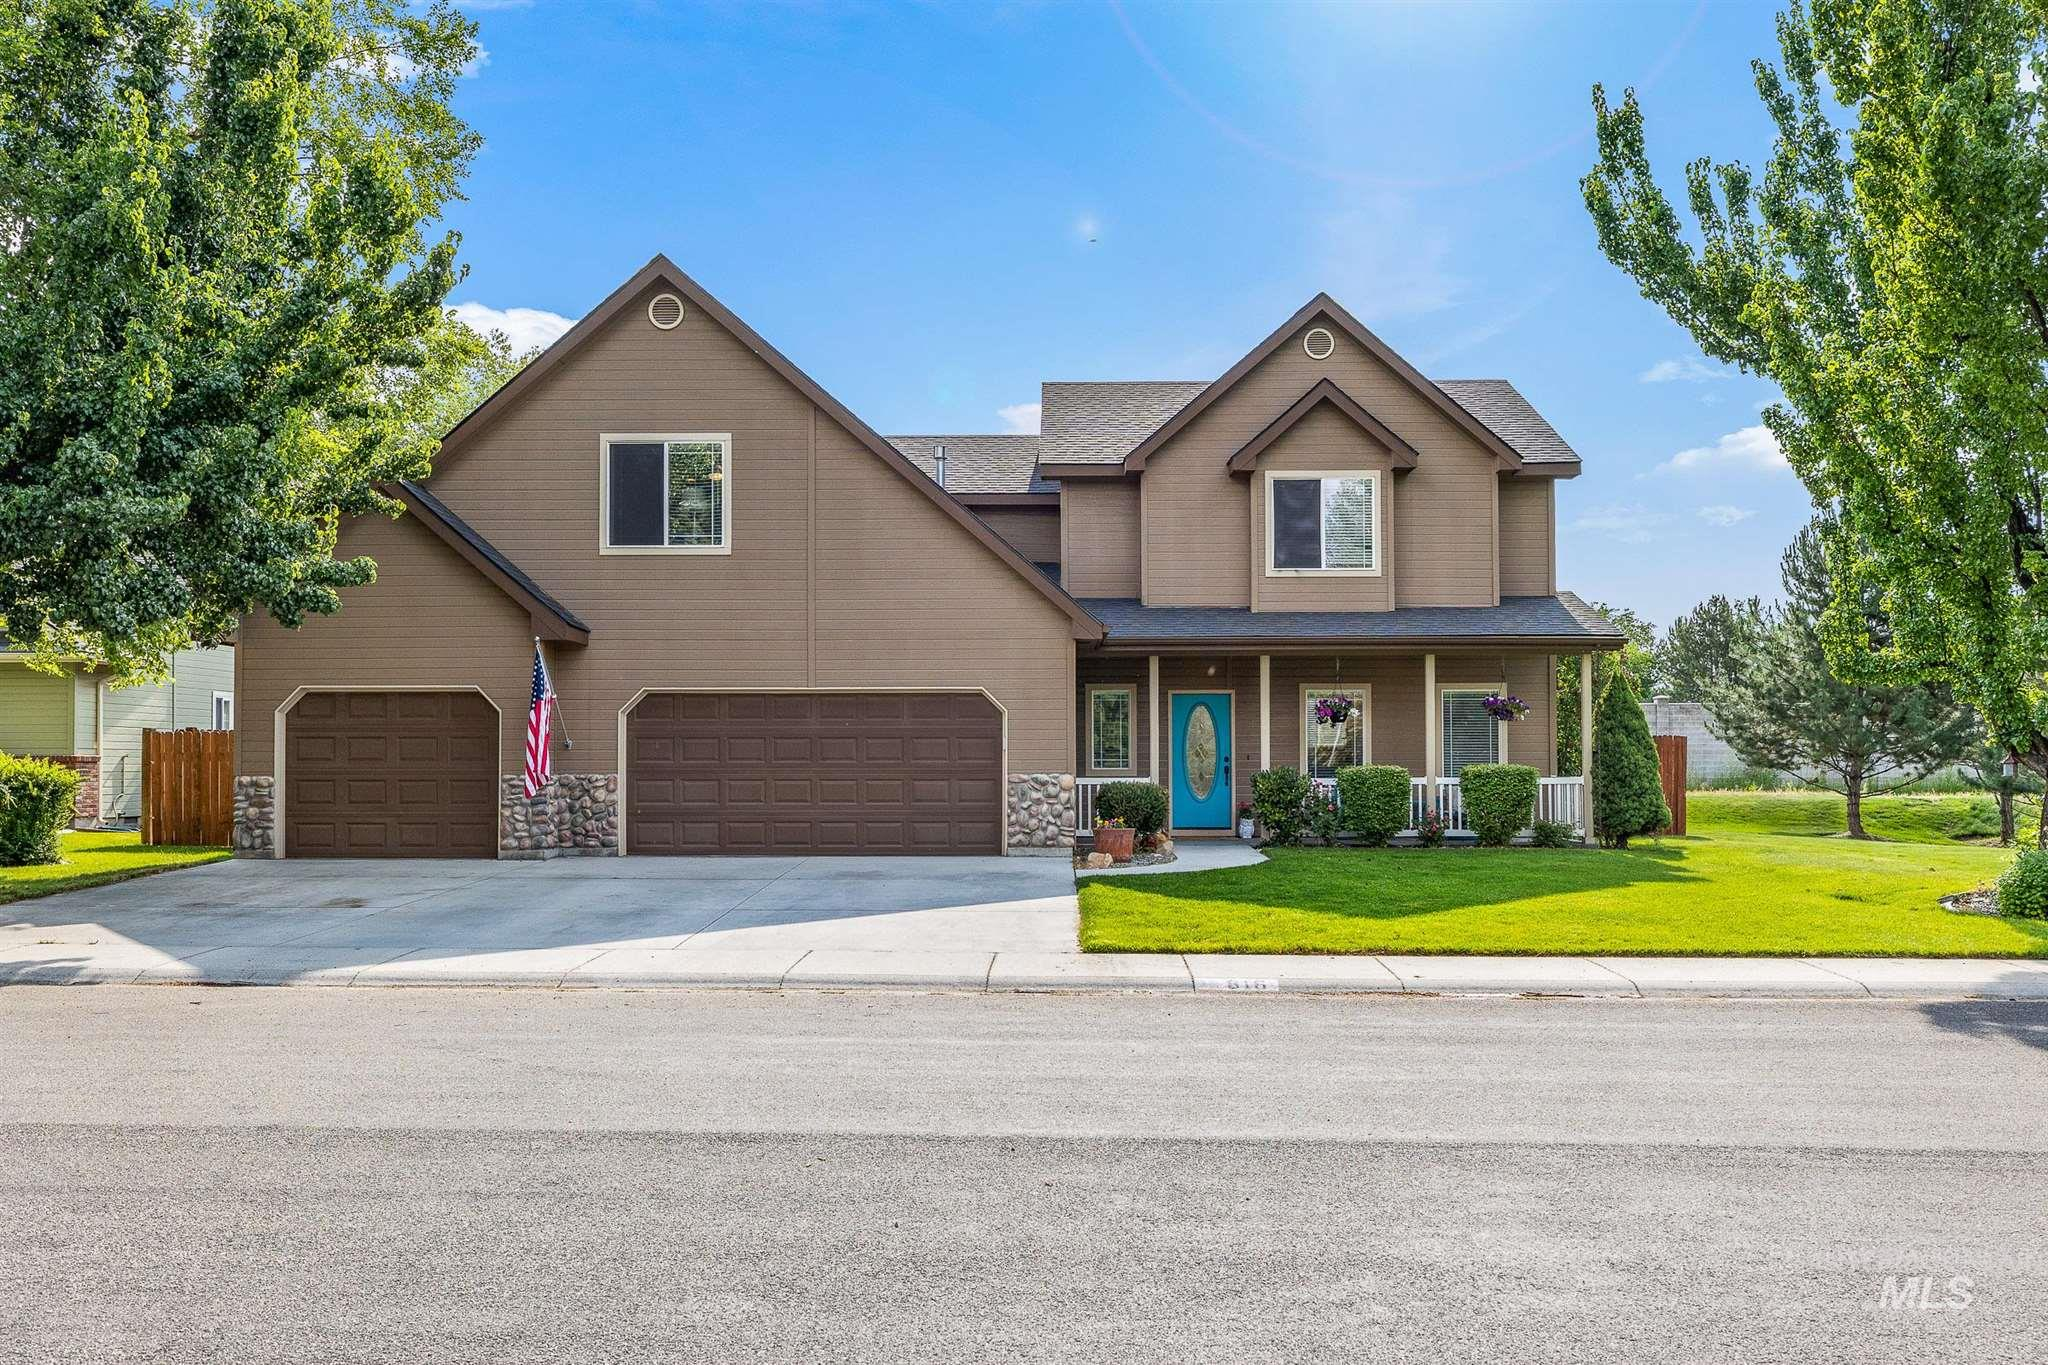 816 S Waterton Ave, Eagle, ID 83616